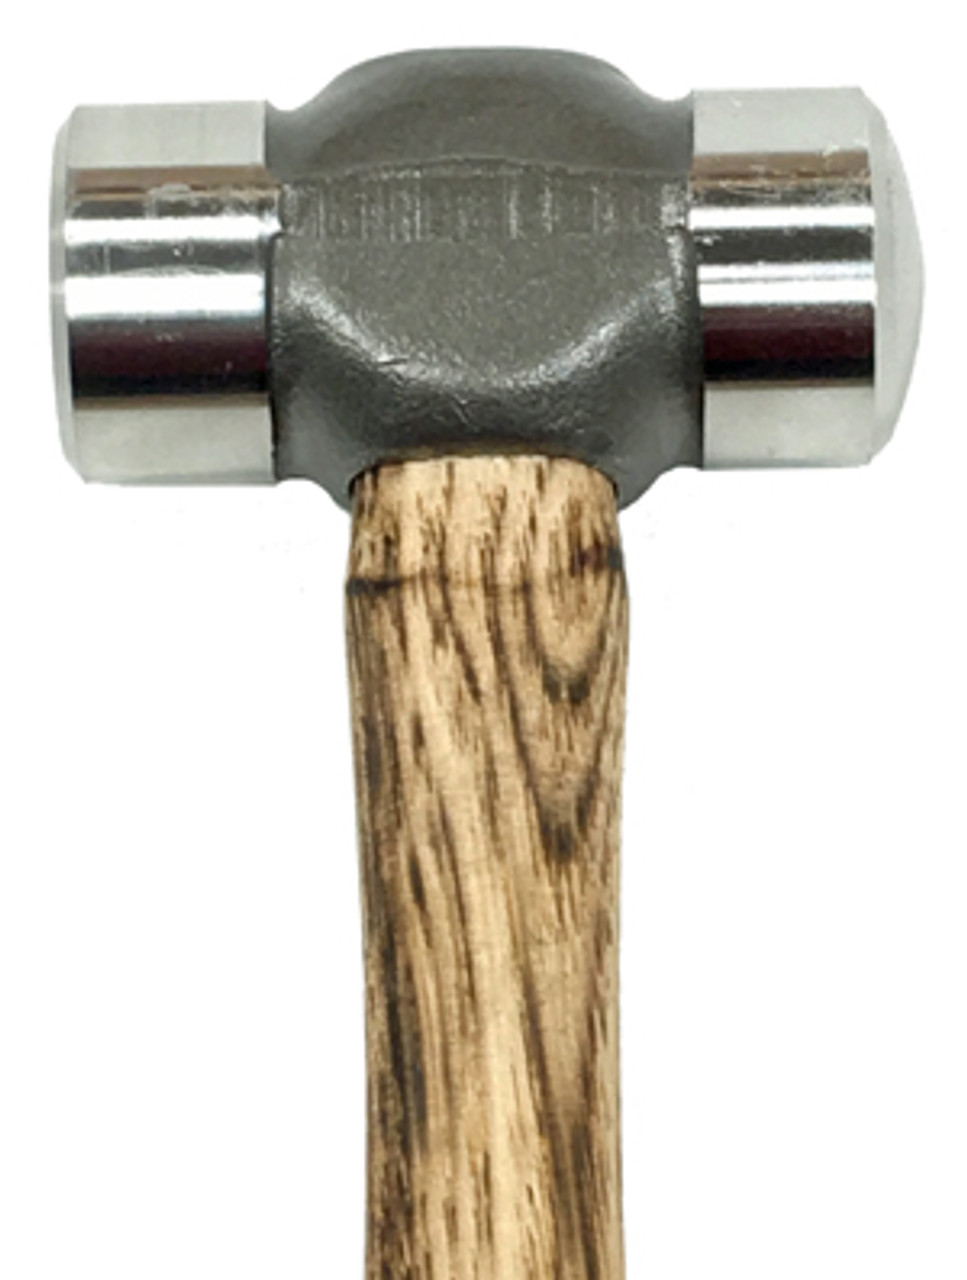 Nordic Forge 2 lb Farrier Rounding Hammer, 1 1/2 inch faces